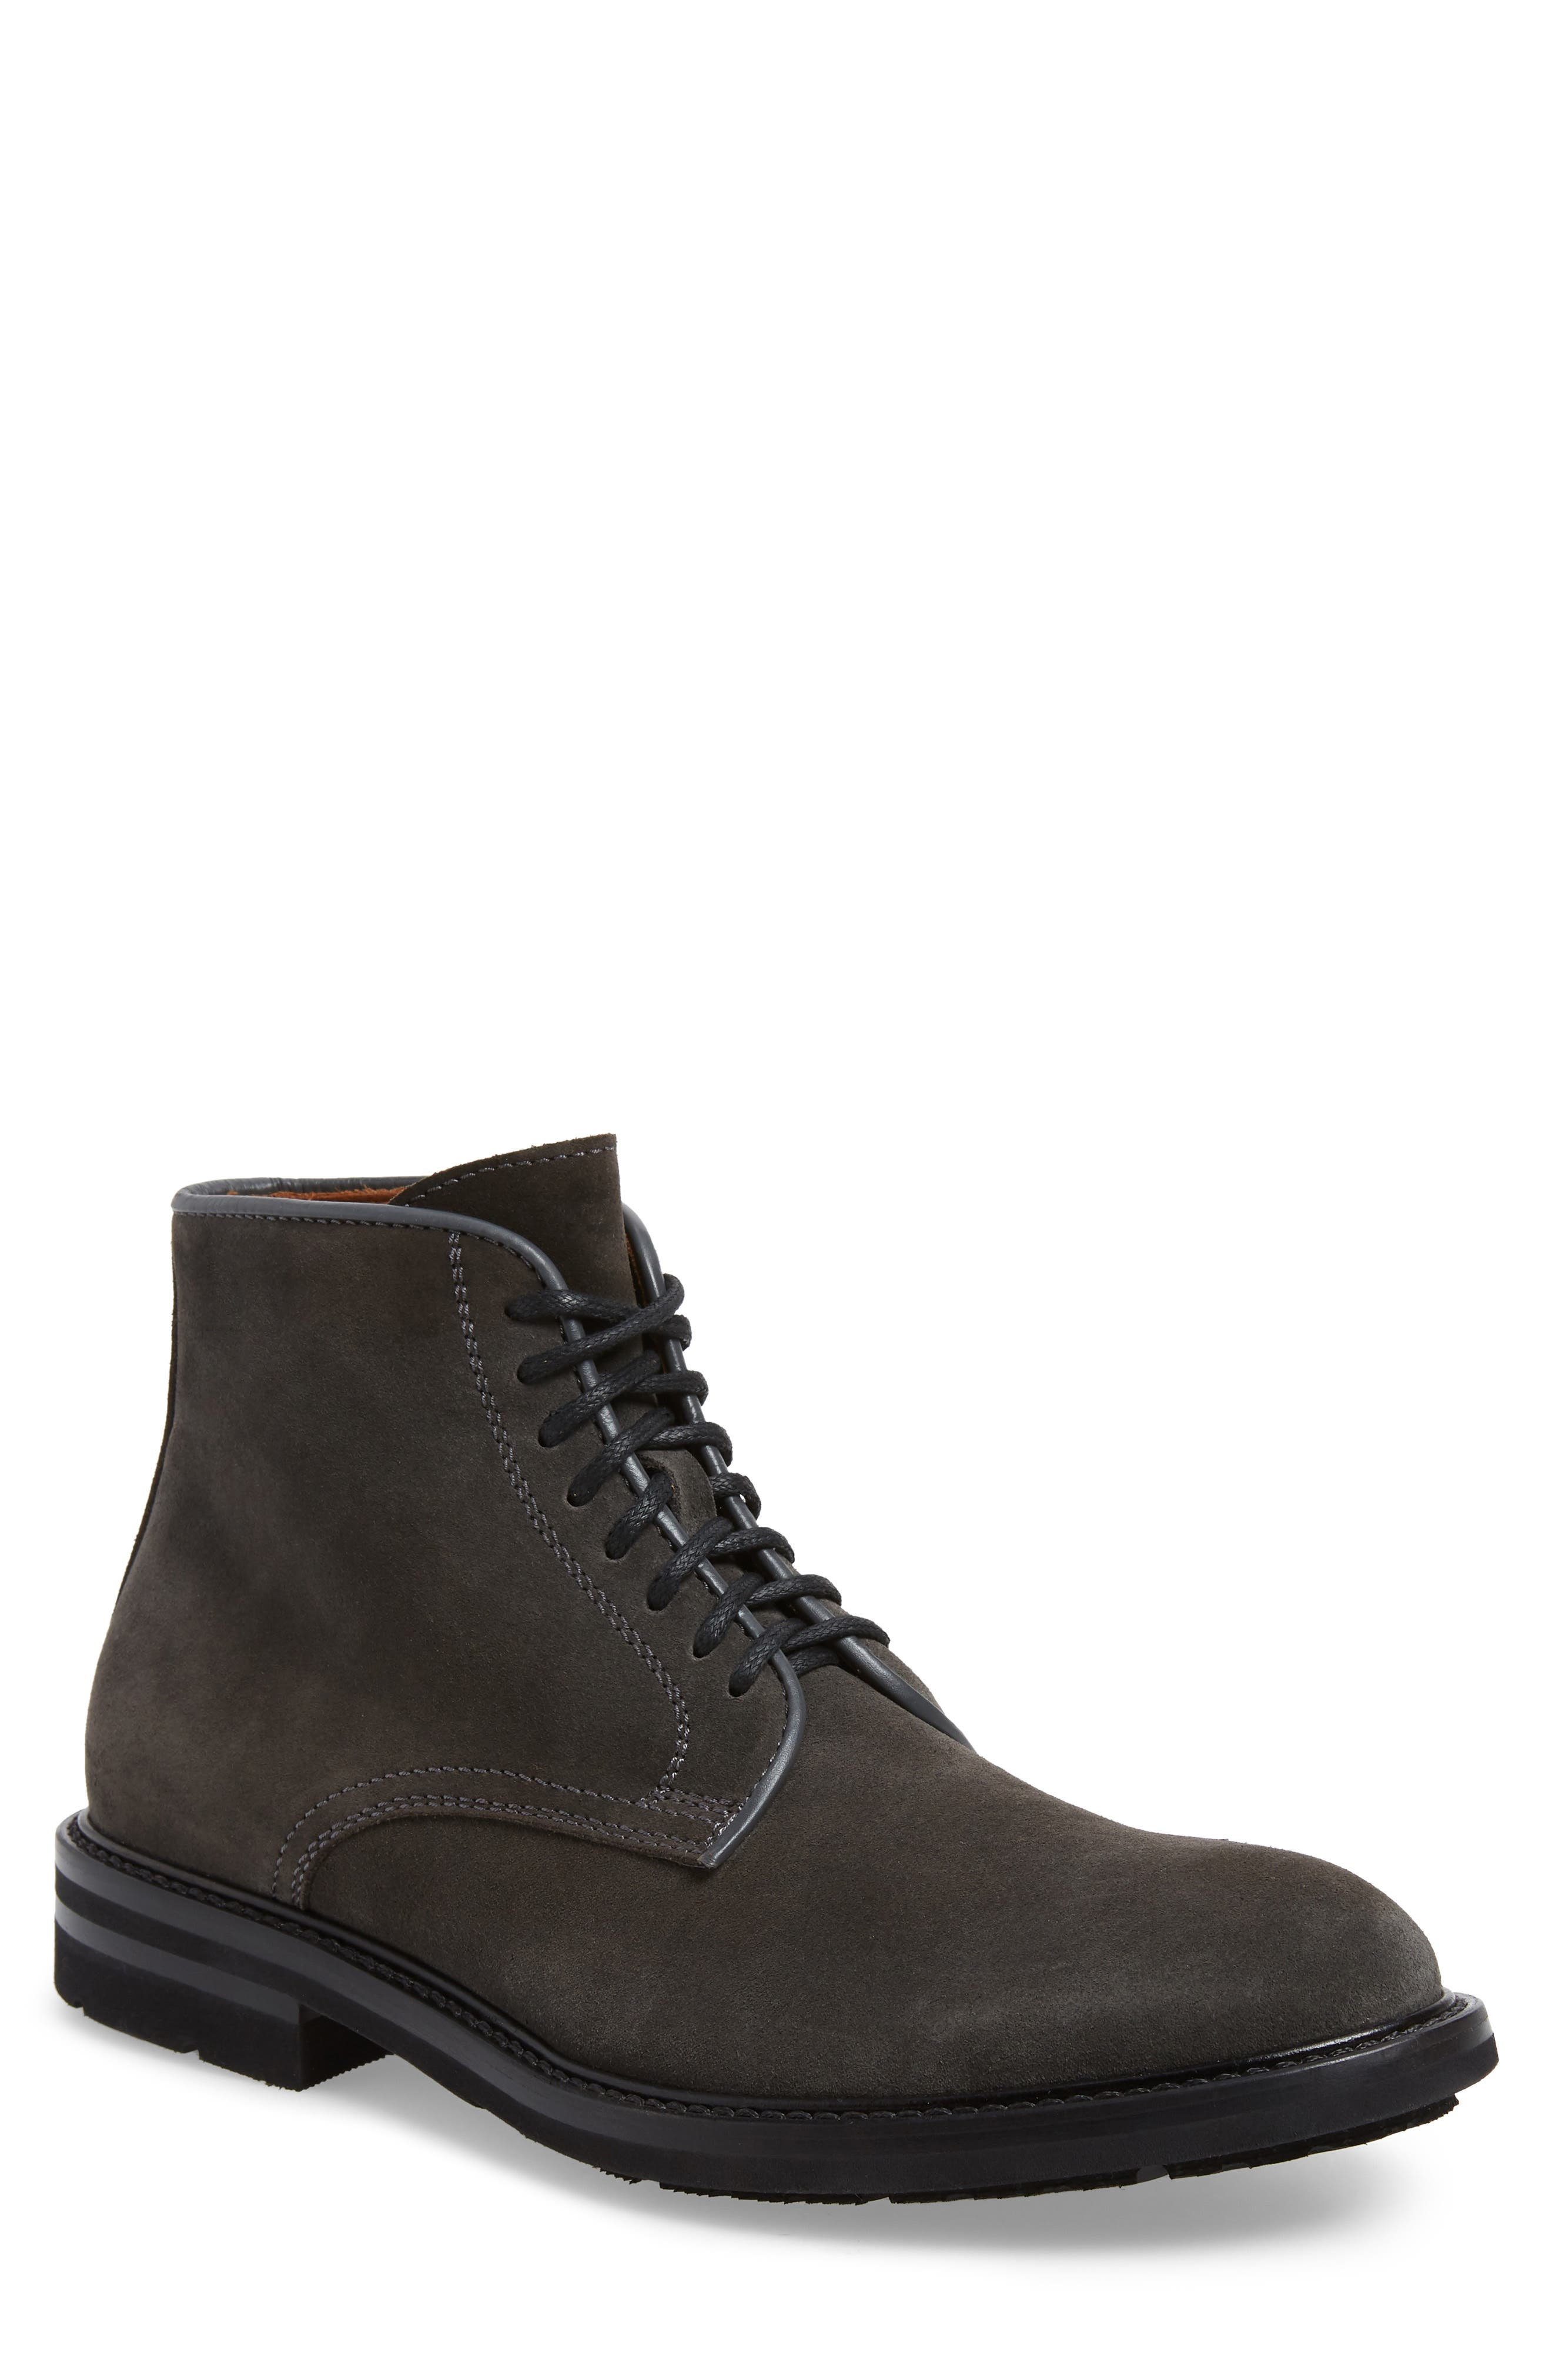 Renzo Weatherproof Lace-Up Boot, Main, color, DARK CHARCOAL